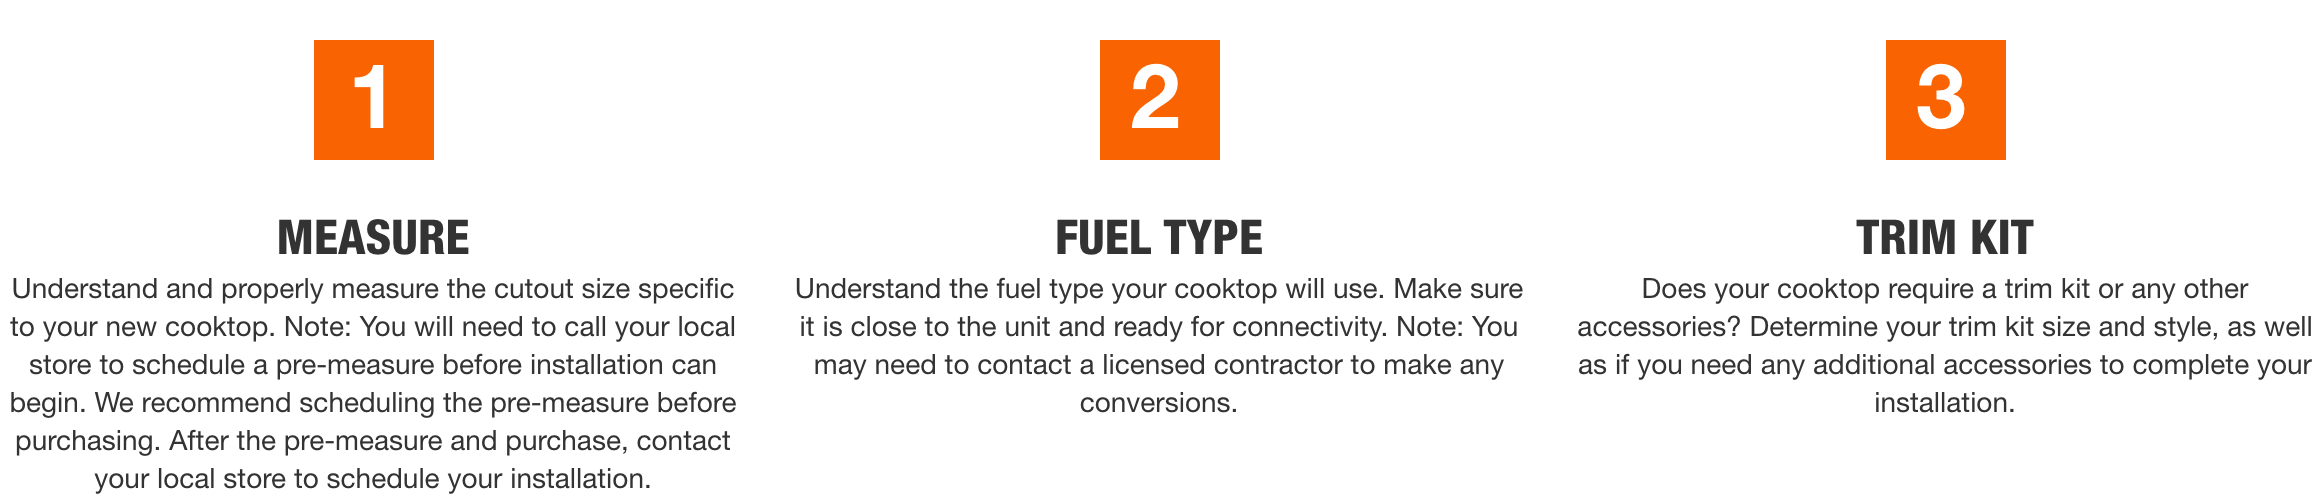 MEASURE Understand and properly measure the cutout size specific to your new cooktop. Note: You will need to call your local store to schedule a pre-measure before installation can begin. We recommend scheduling the pre-measure before purchasing. After the pre-measure and purchase, contact your local store to schedule your installation. Step 2: Fuel Type FUEL TYPE Understand the fuel type your cooktop will use. Make sure it is close to the unit and ready for connectivity. Note: You may need to contact a licensed contractor to make any conversions. Step 3: Trim Kit TRIM KIT Does your cooktop require a trim kit or any other accessories? Determine your trim kit size and style, as well as if you need any additional accessories to complete your installation.